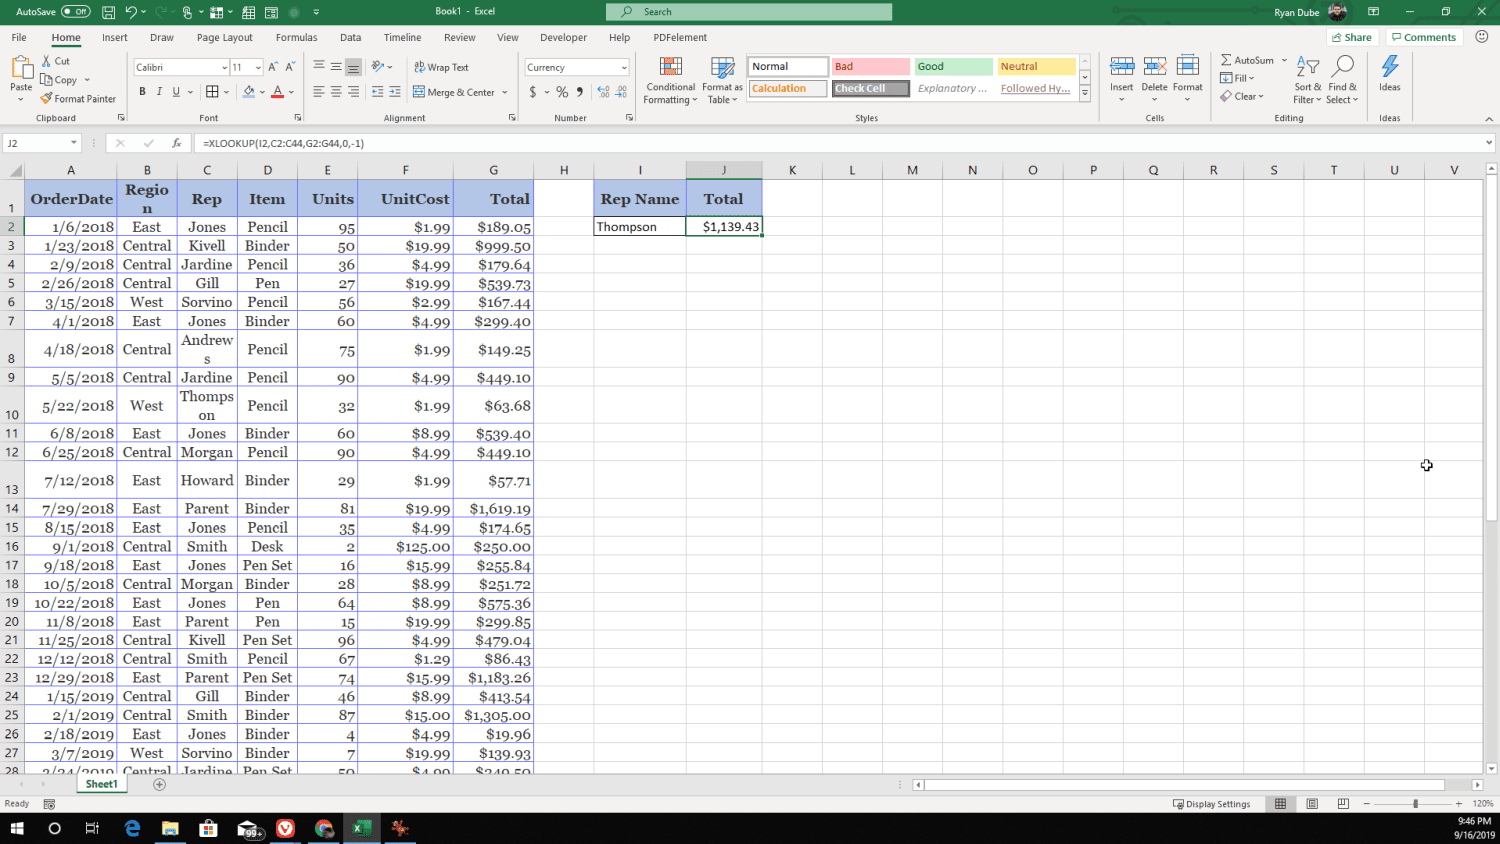 Screenshot of searching for last item in a lookup array using XLOOKUP